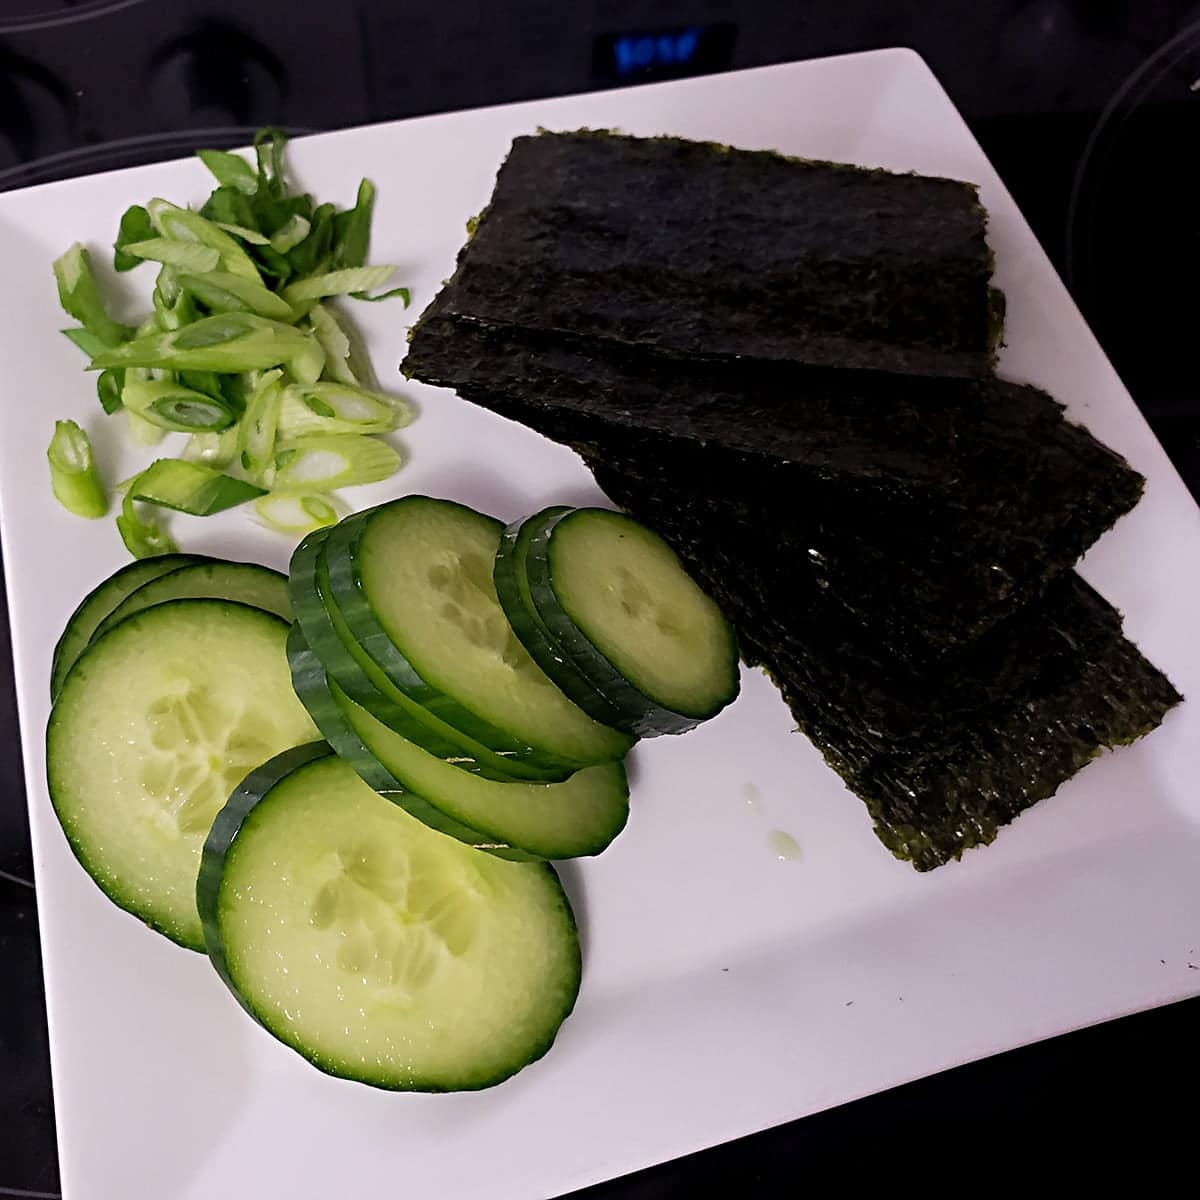 A white cutting board with slices of cucumber and green onions on it, along with pieces of nori - seaweed sheets.